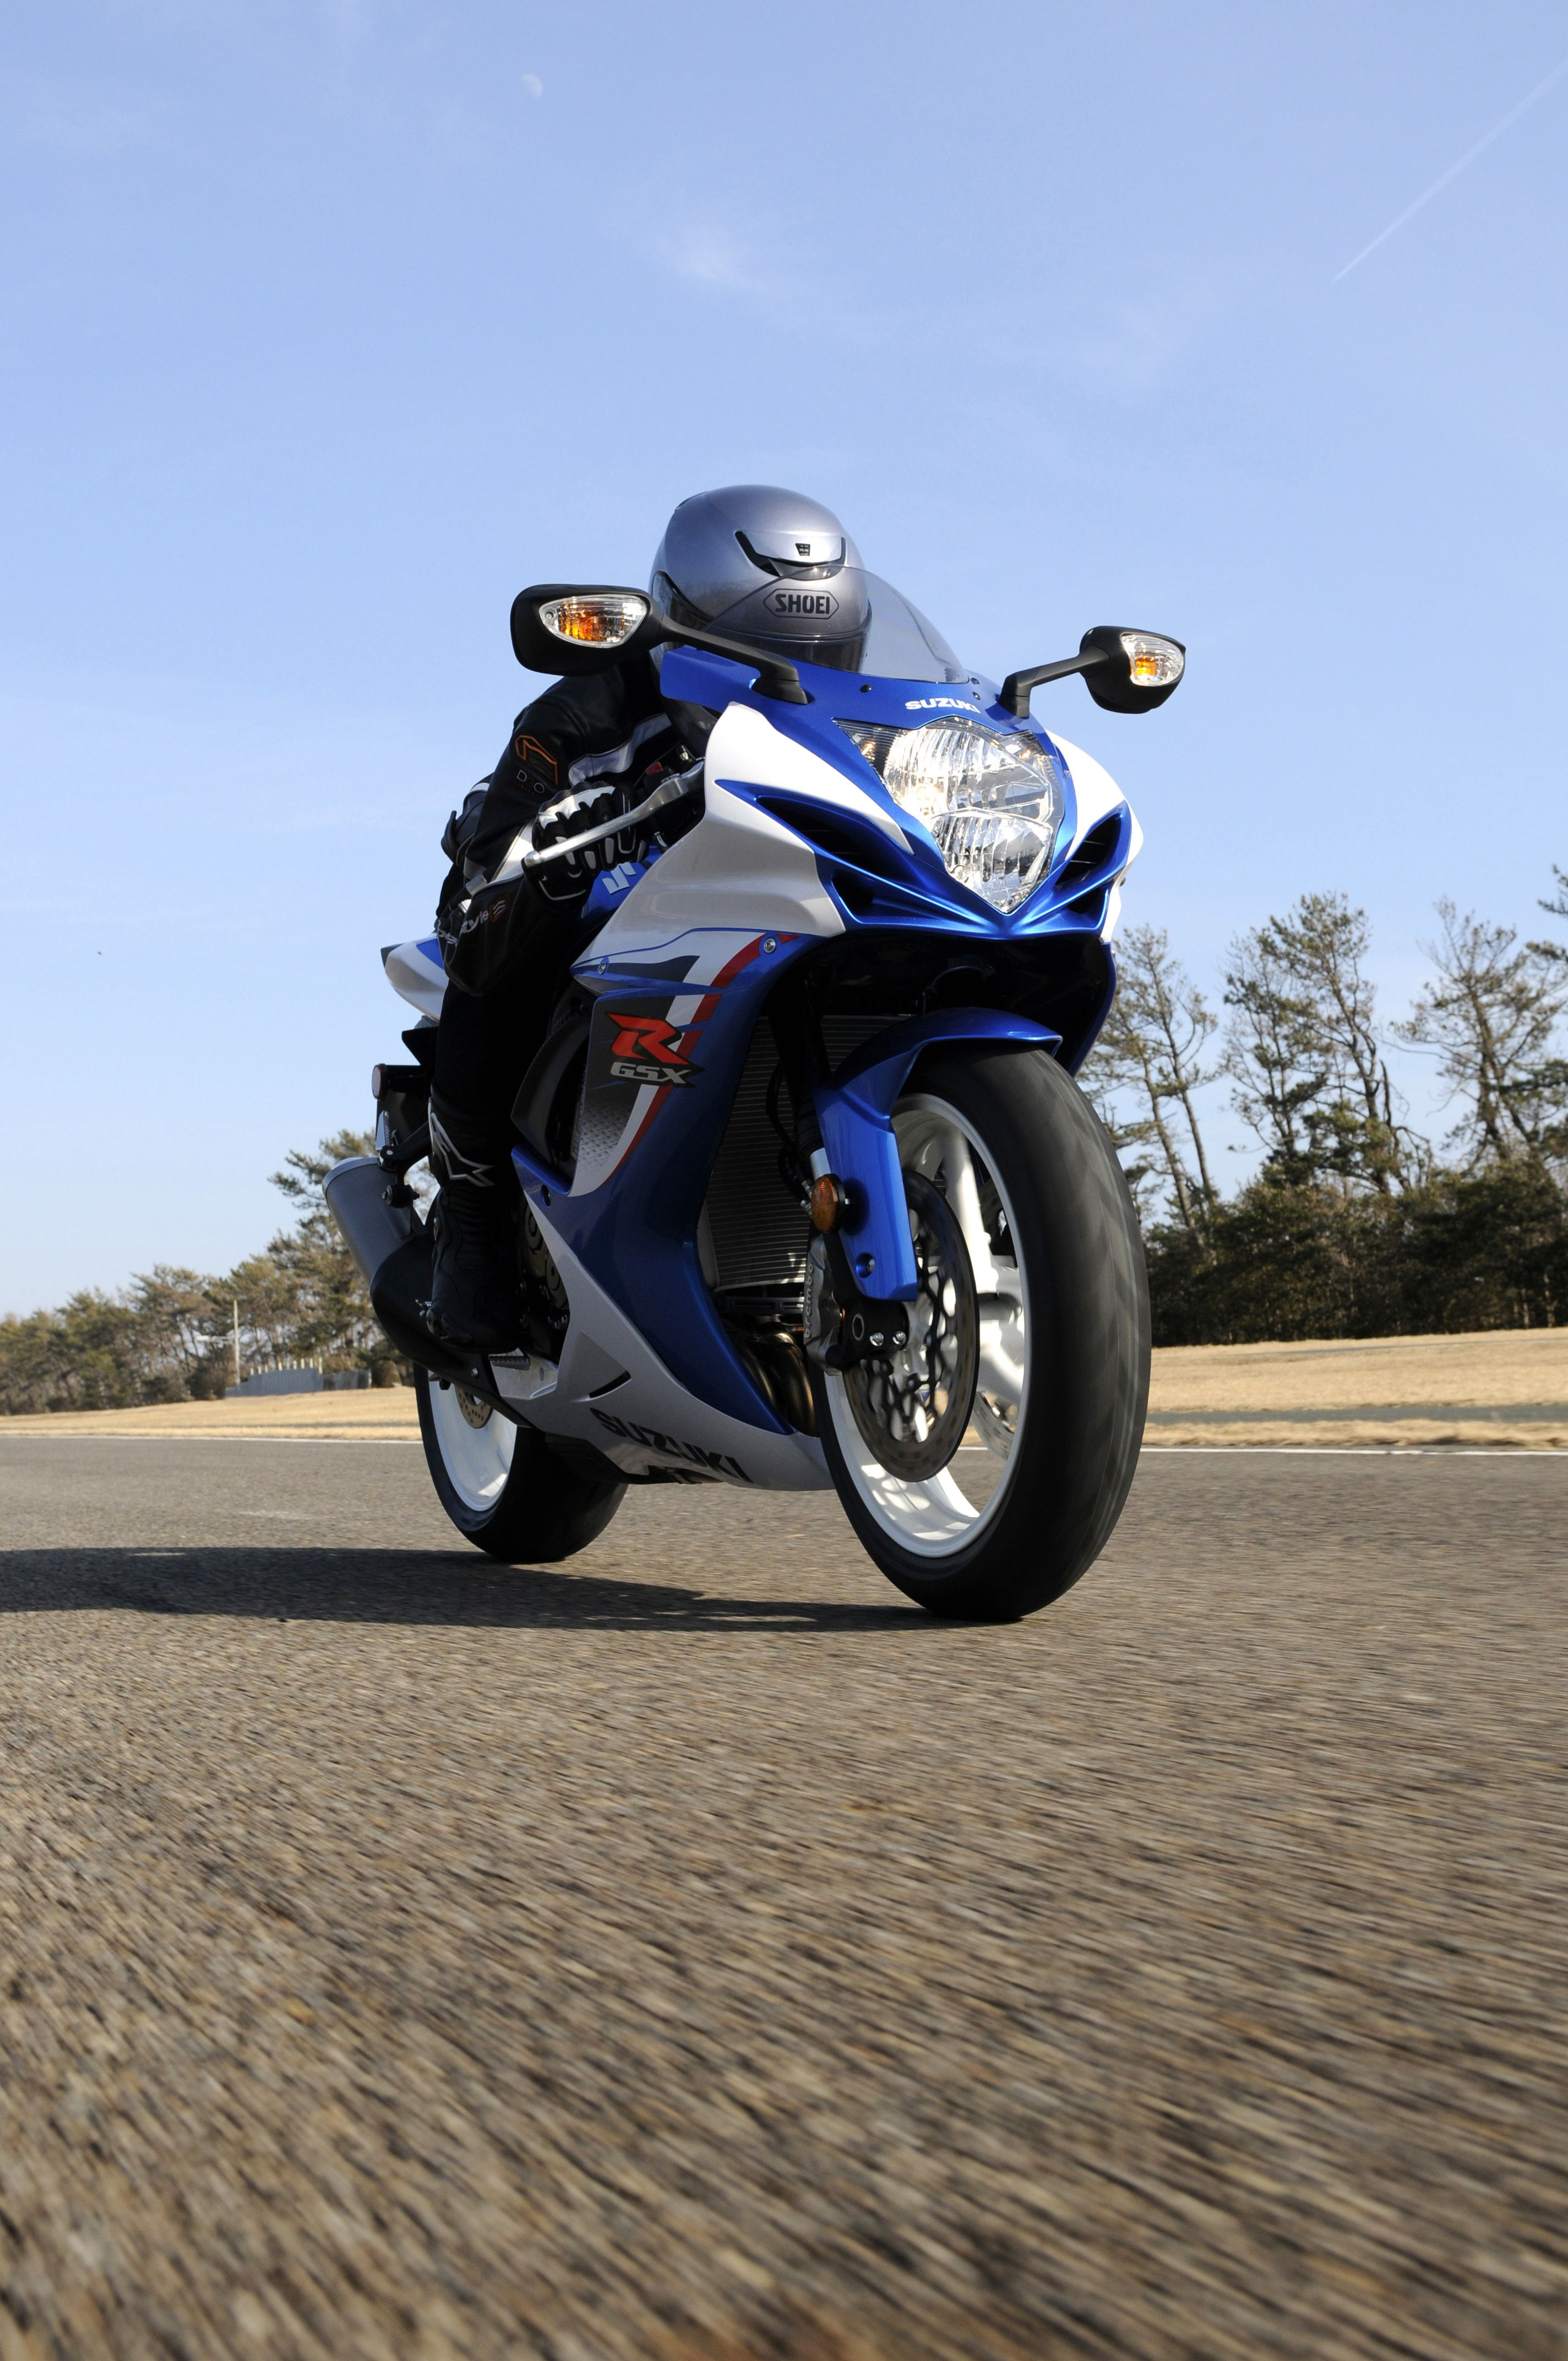 Make This A Summer To Remember With A New Suzuki Models Like The Gsx R600 Are Now More Affordable Than Ever With The Star Spangled Suzuki Motorcycle Model Gsx